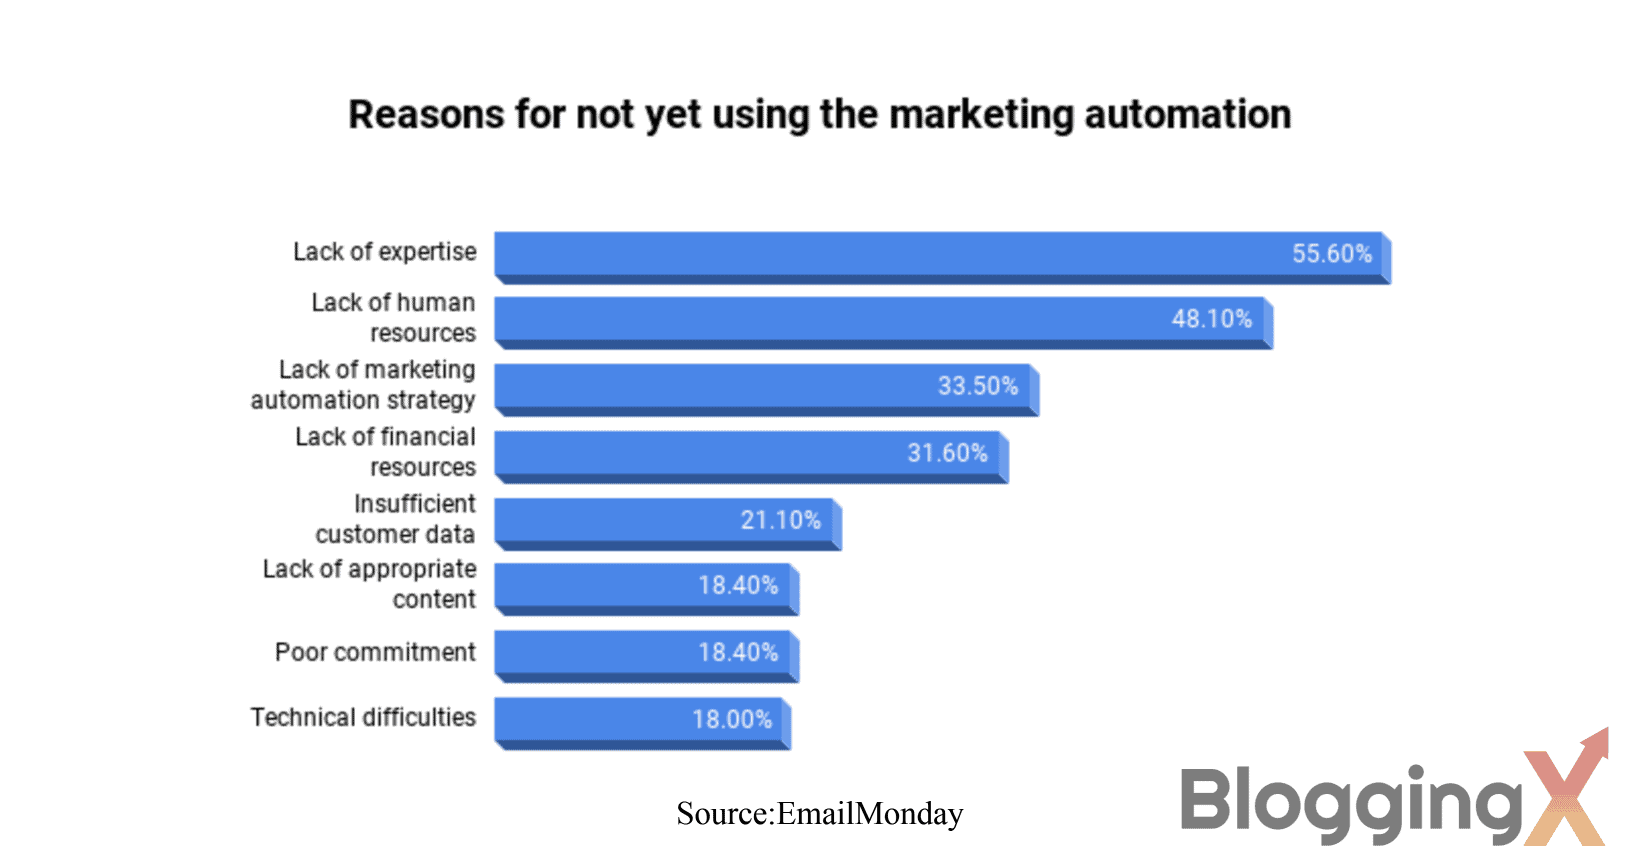 Reasons for not yet using the marketing automation